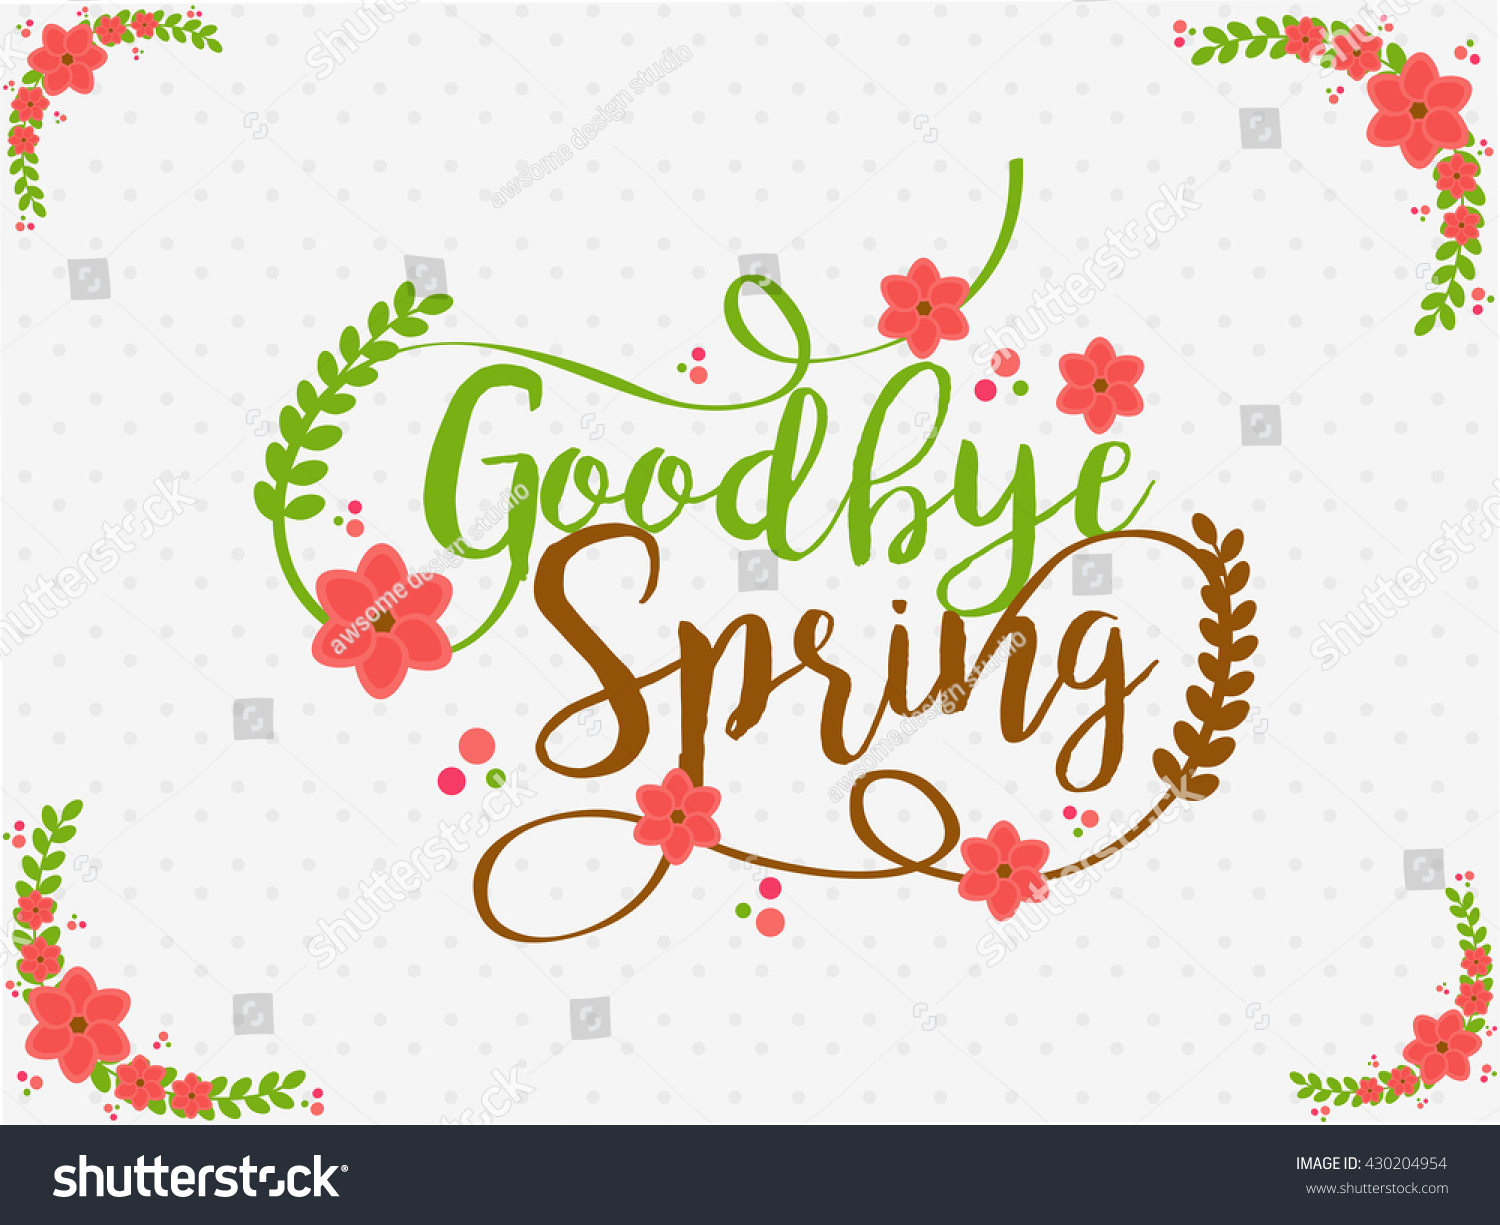 Goodbye spring banner poster stylish typography stock vector goodbye spring banner or poster with stylish typography kristyandbryce Image collections